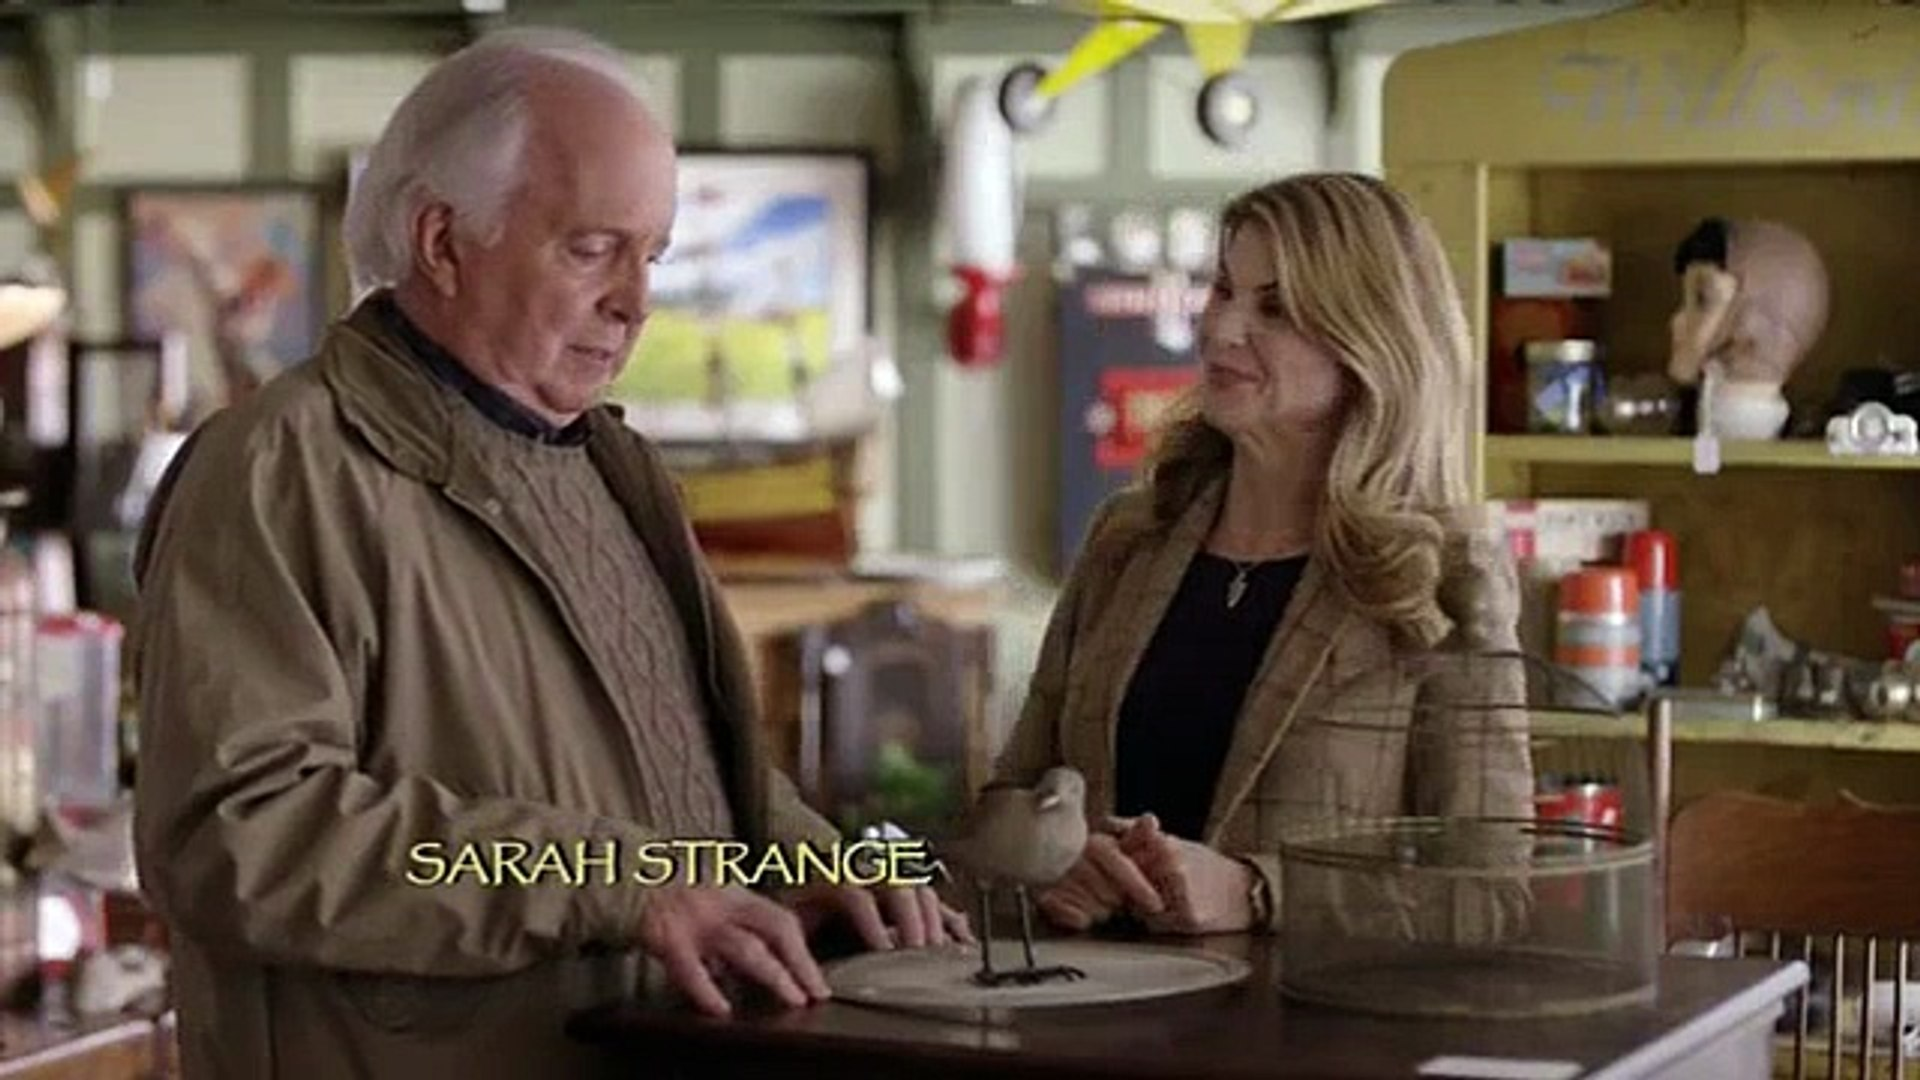 Garage Sale Mystery The Beach garage sale mystery s01e06 vol. 01